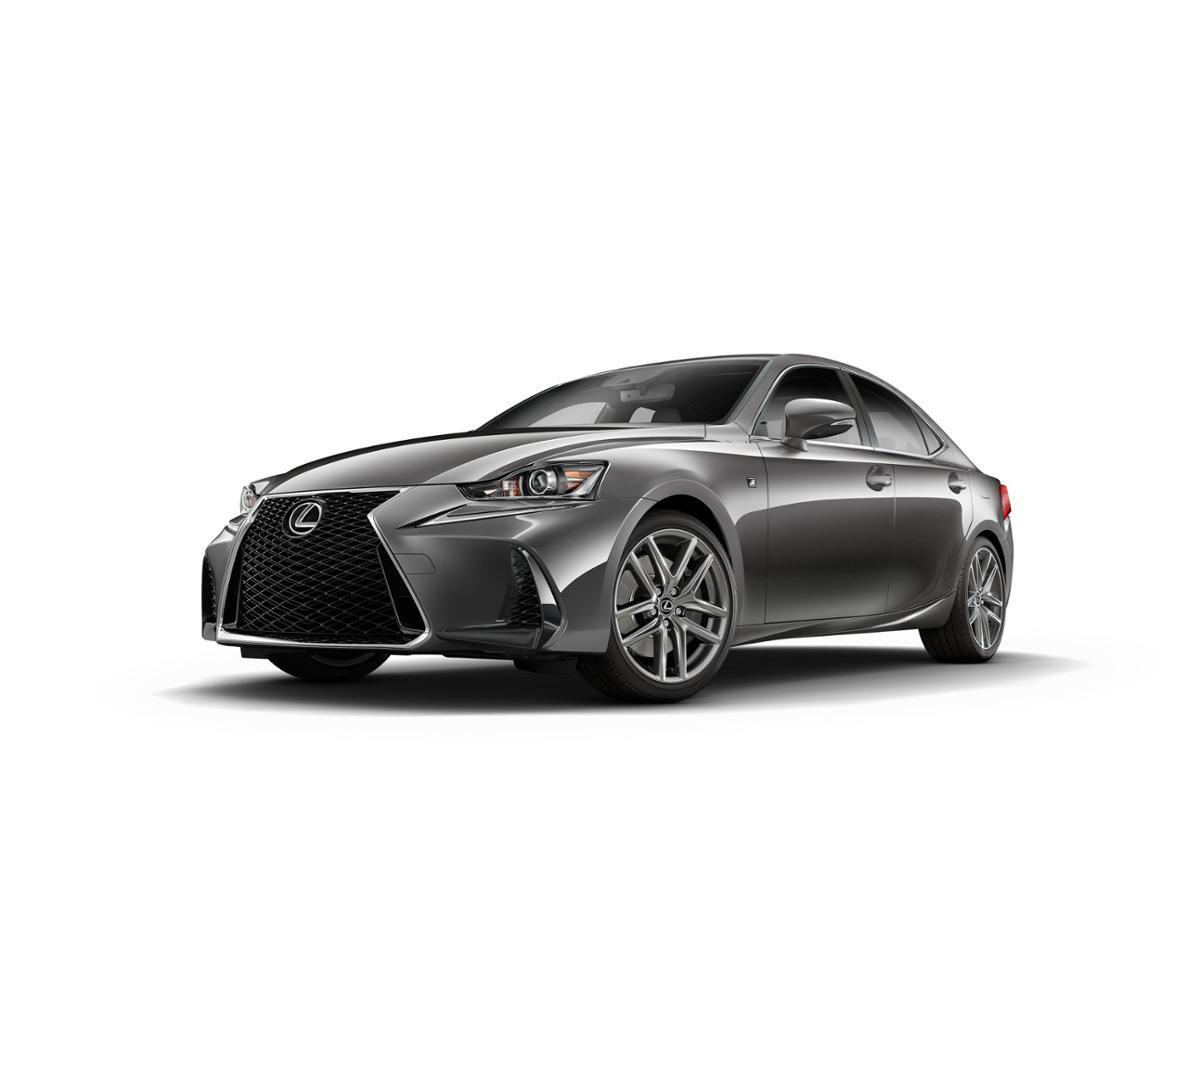 2018 Lexus IS Vehicle Photo in Santa Monica, CA 90404